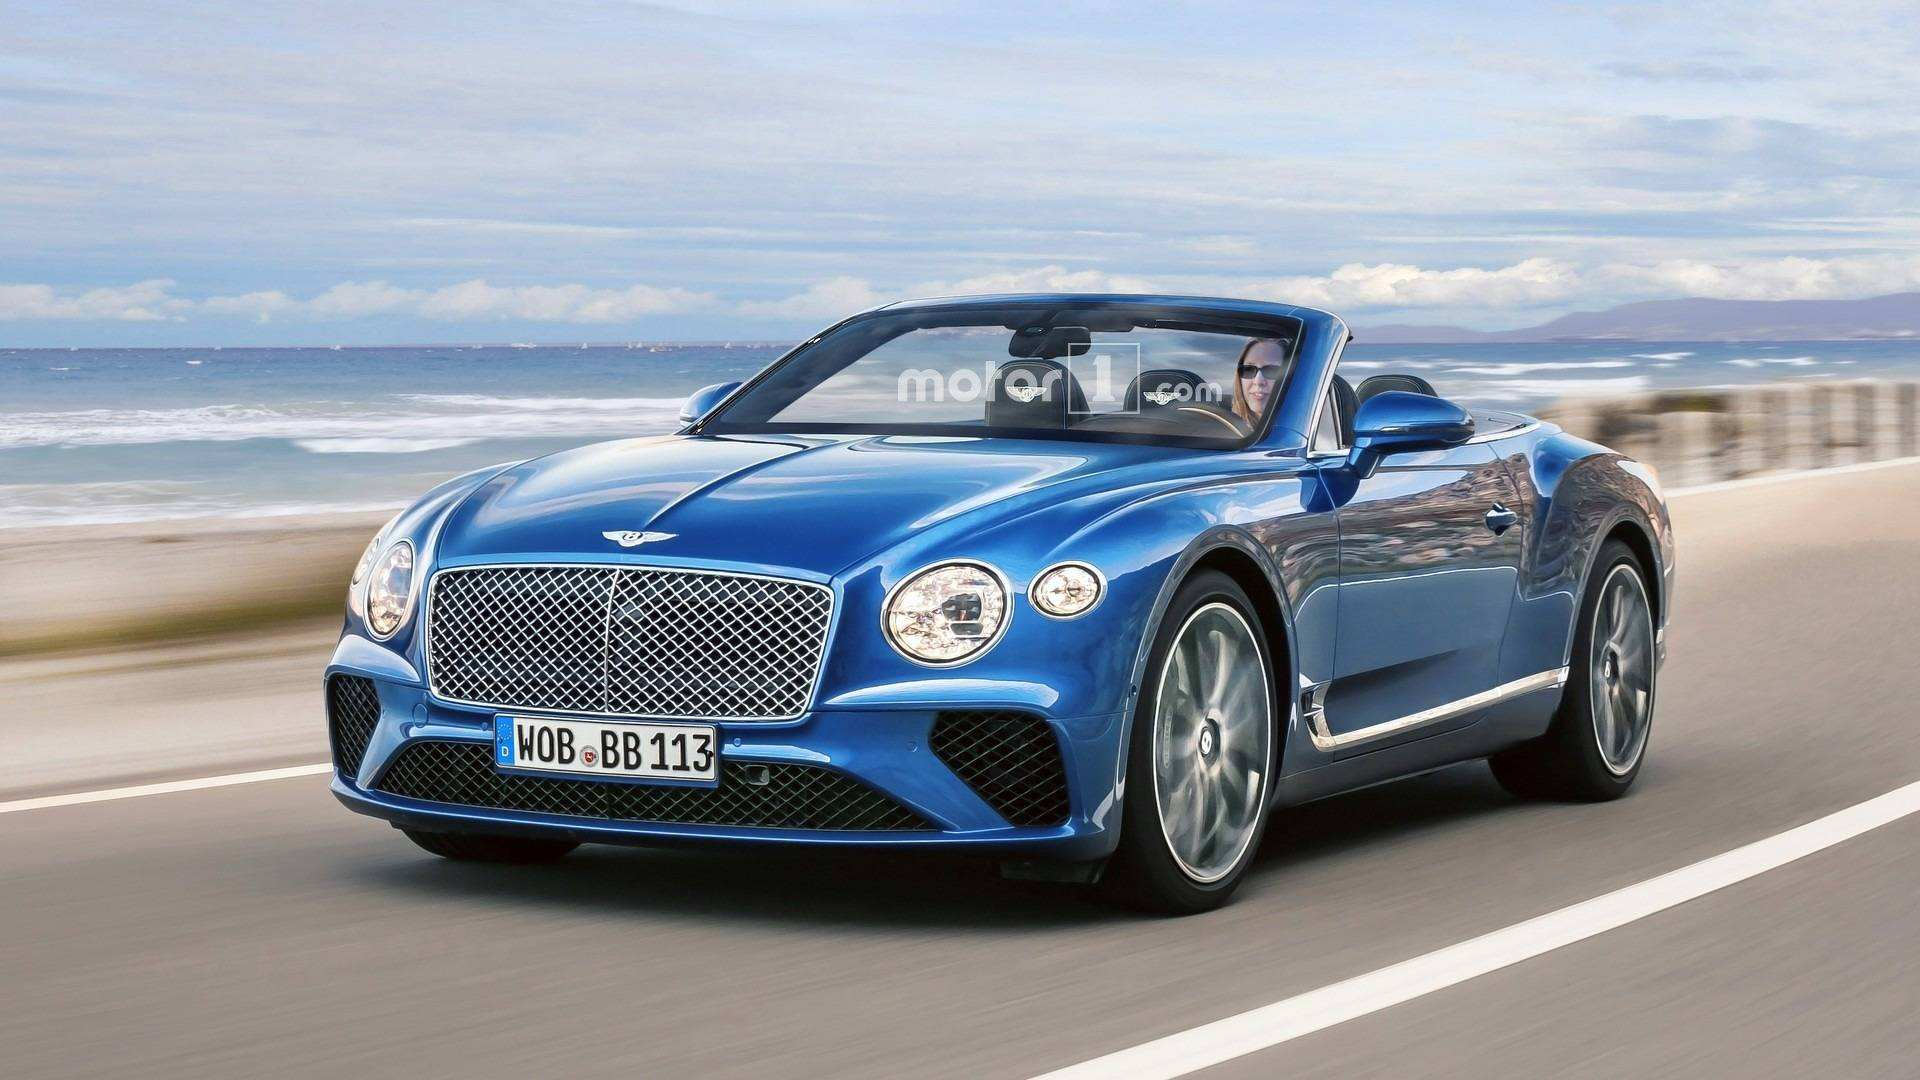 14 New 2019 Bentley Gt V8 Performance and New Engine with 2019 Bentley Gt V8